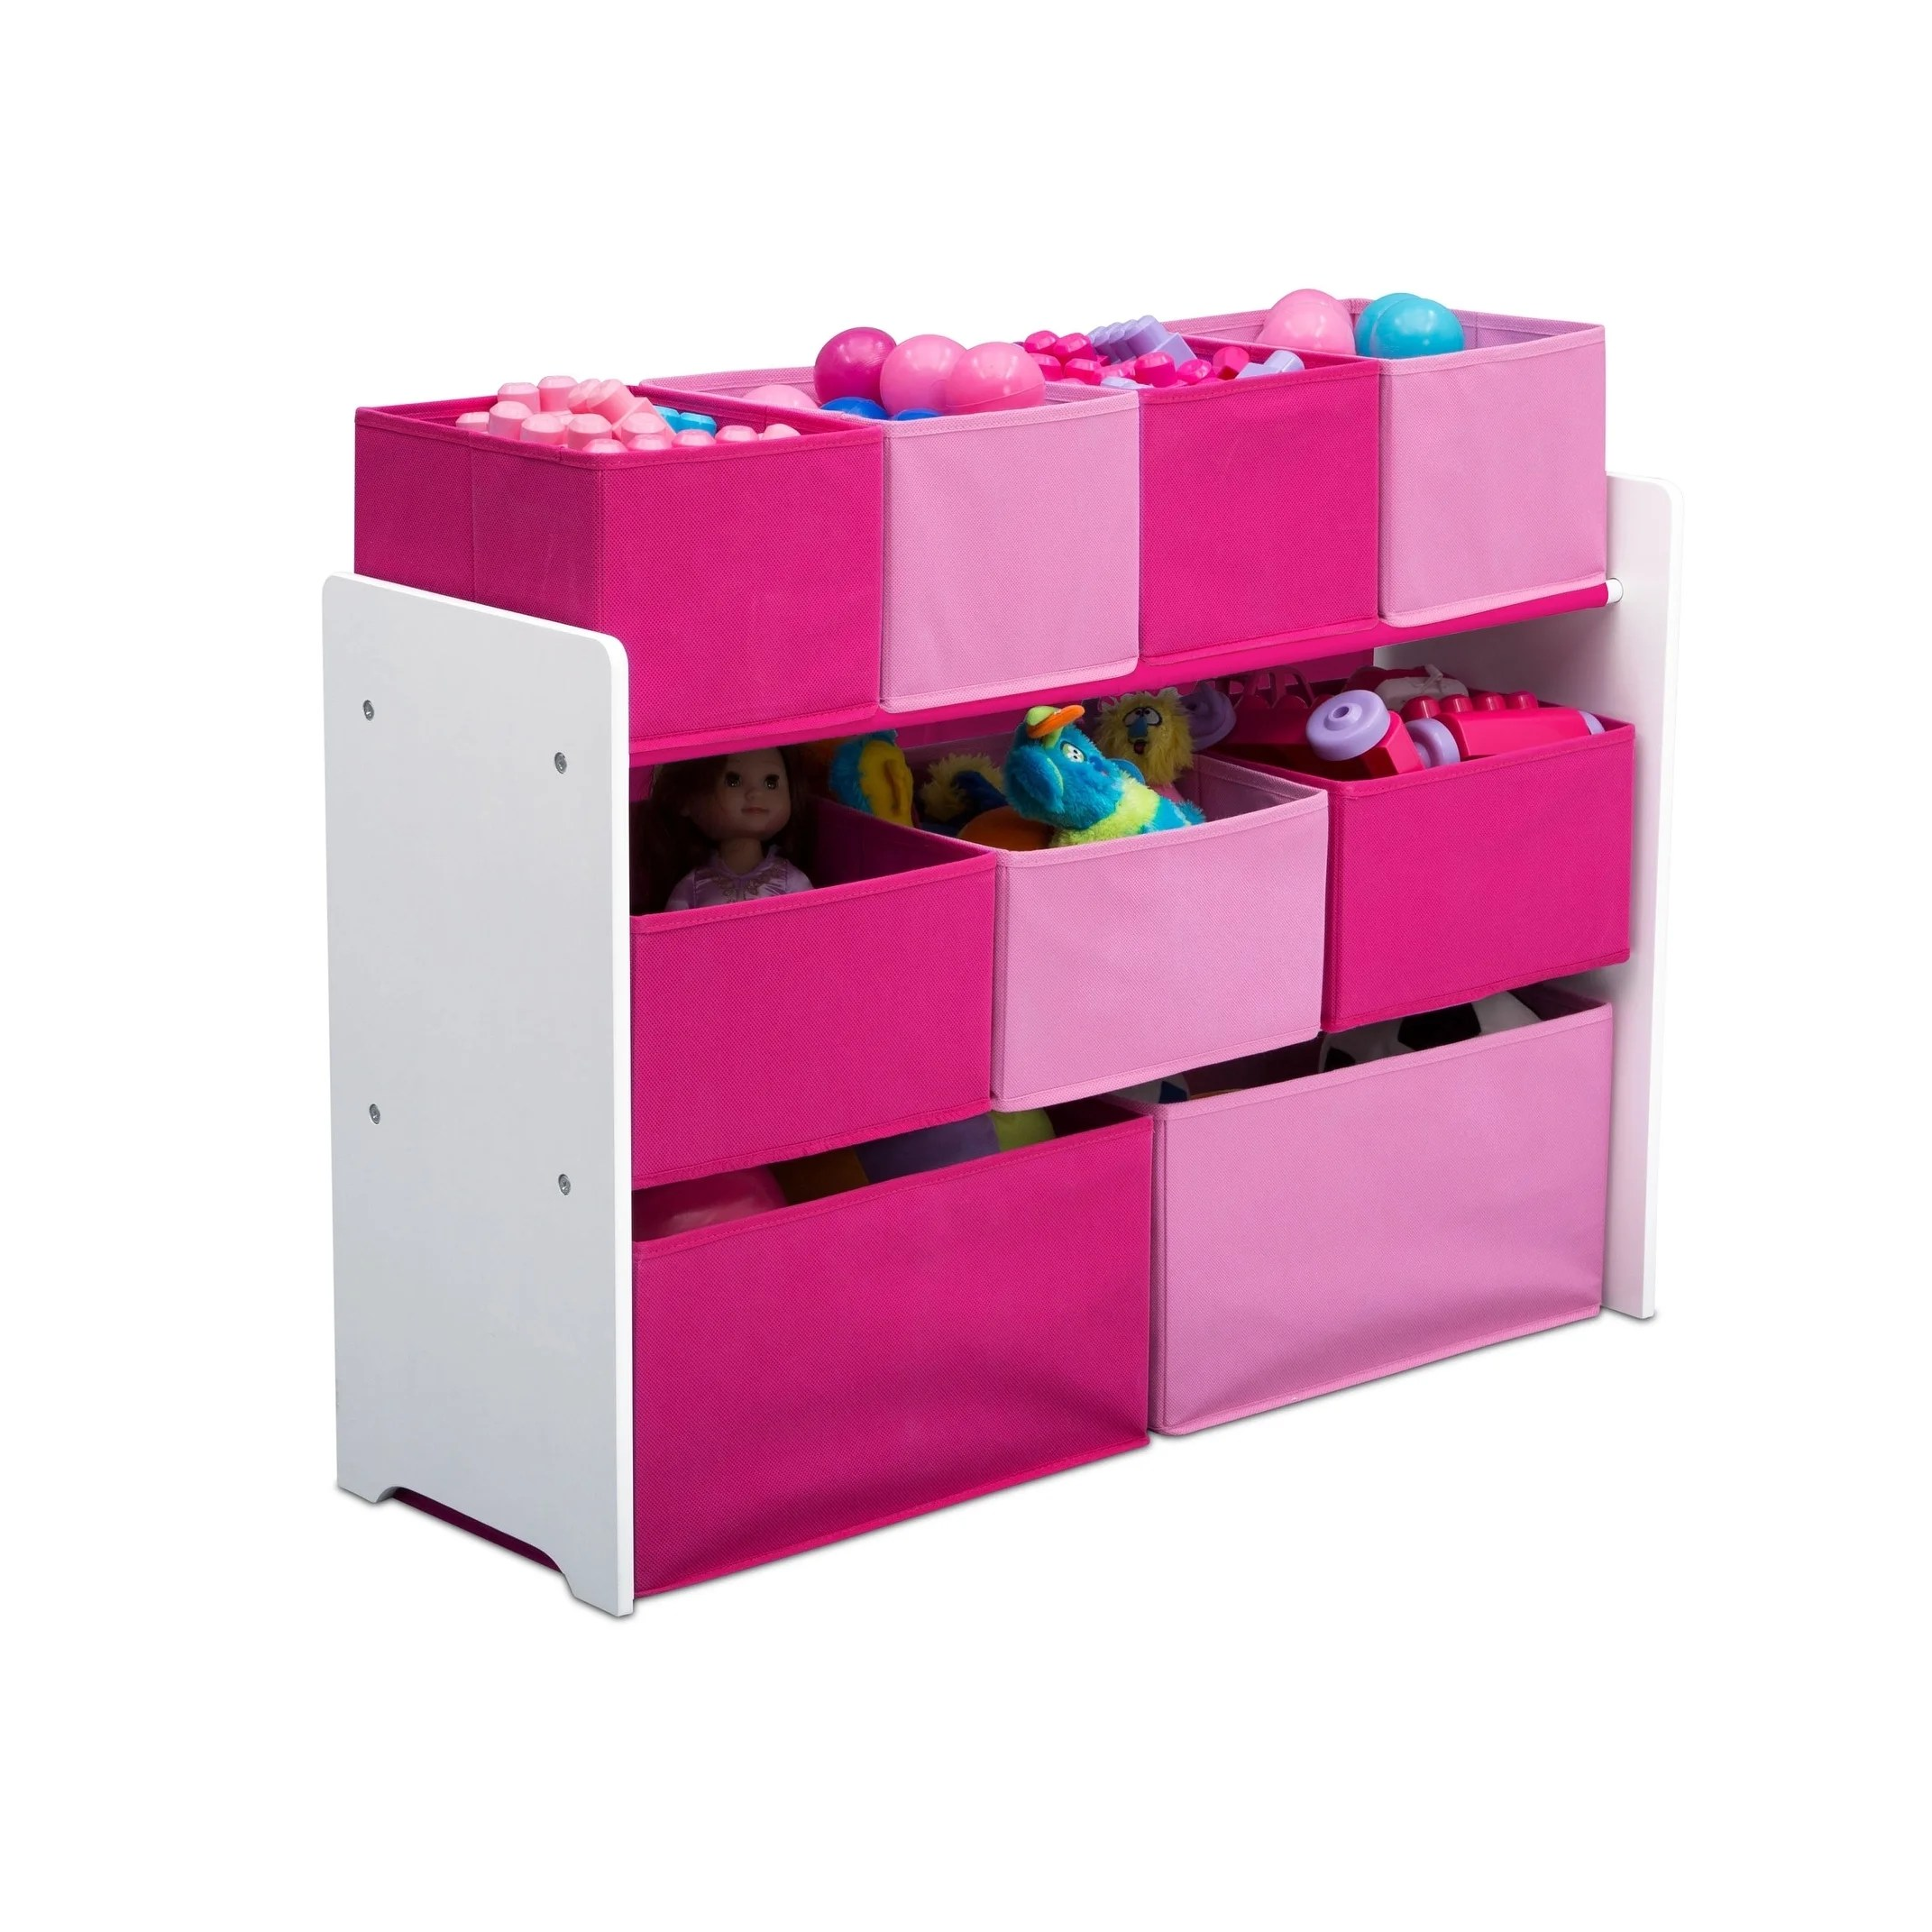 Pink Bins Delta Children Deluxe Multi Bin Toy Organizer With Storage Bins White Pink Bins